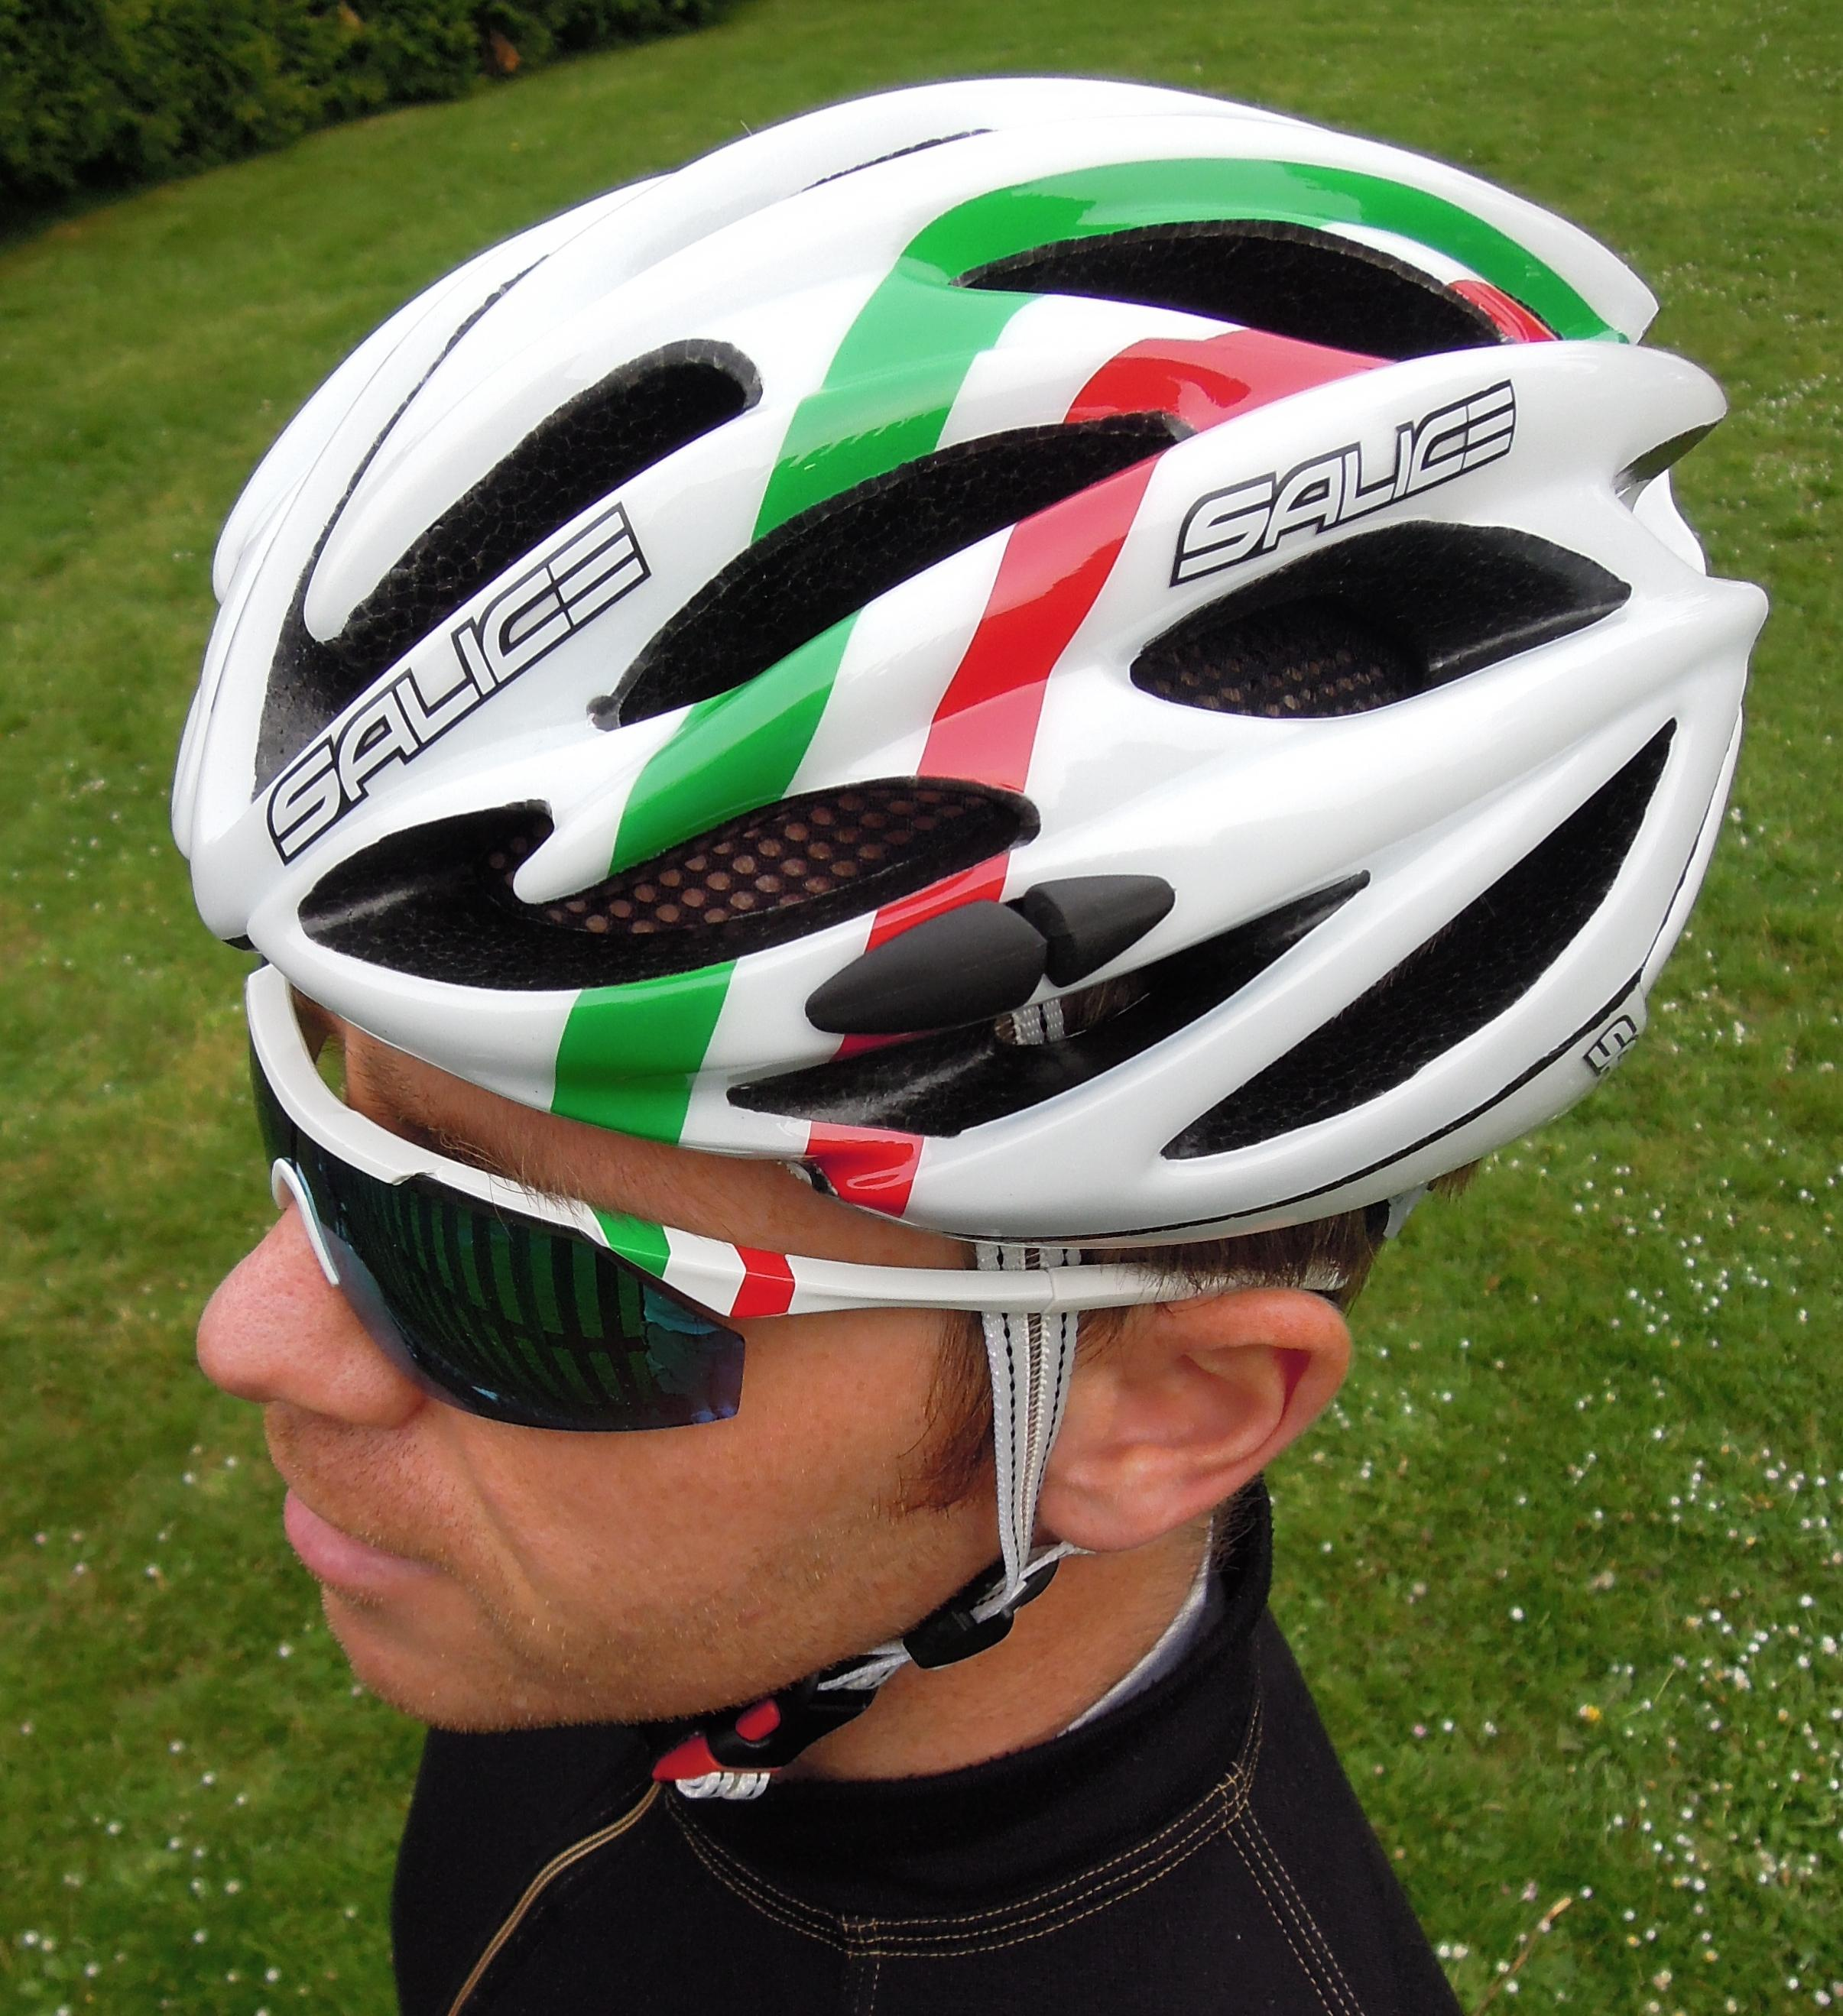 fdc033aab56 Review of Salice Bolt ITA Helmet and Glasses - Merlin Cycles Blog